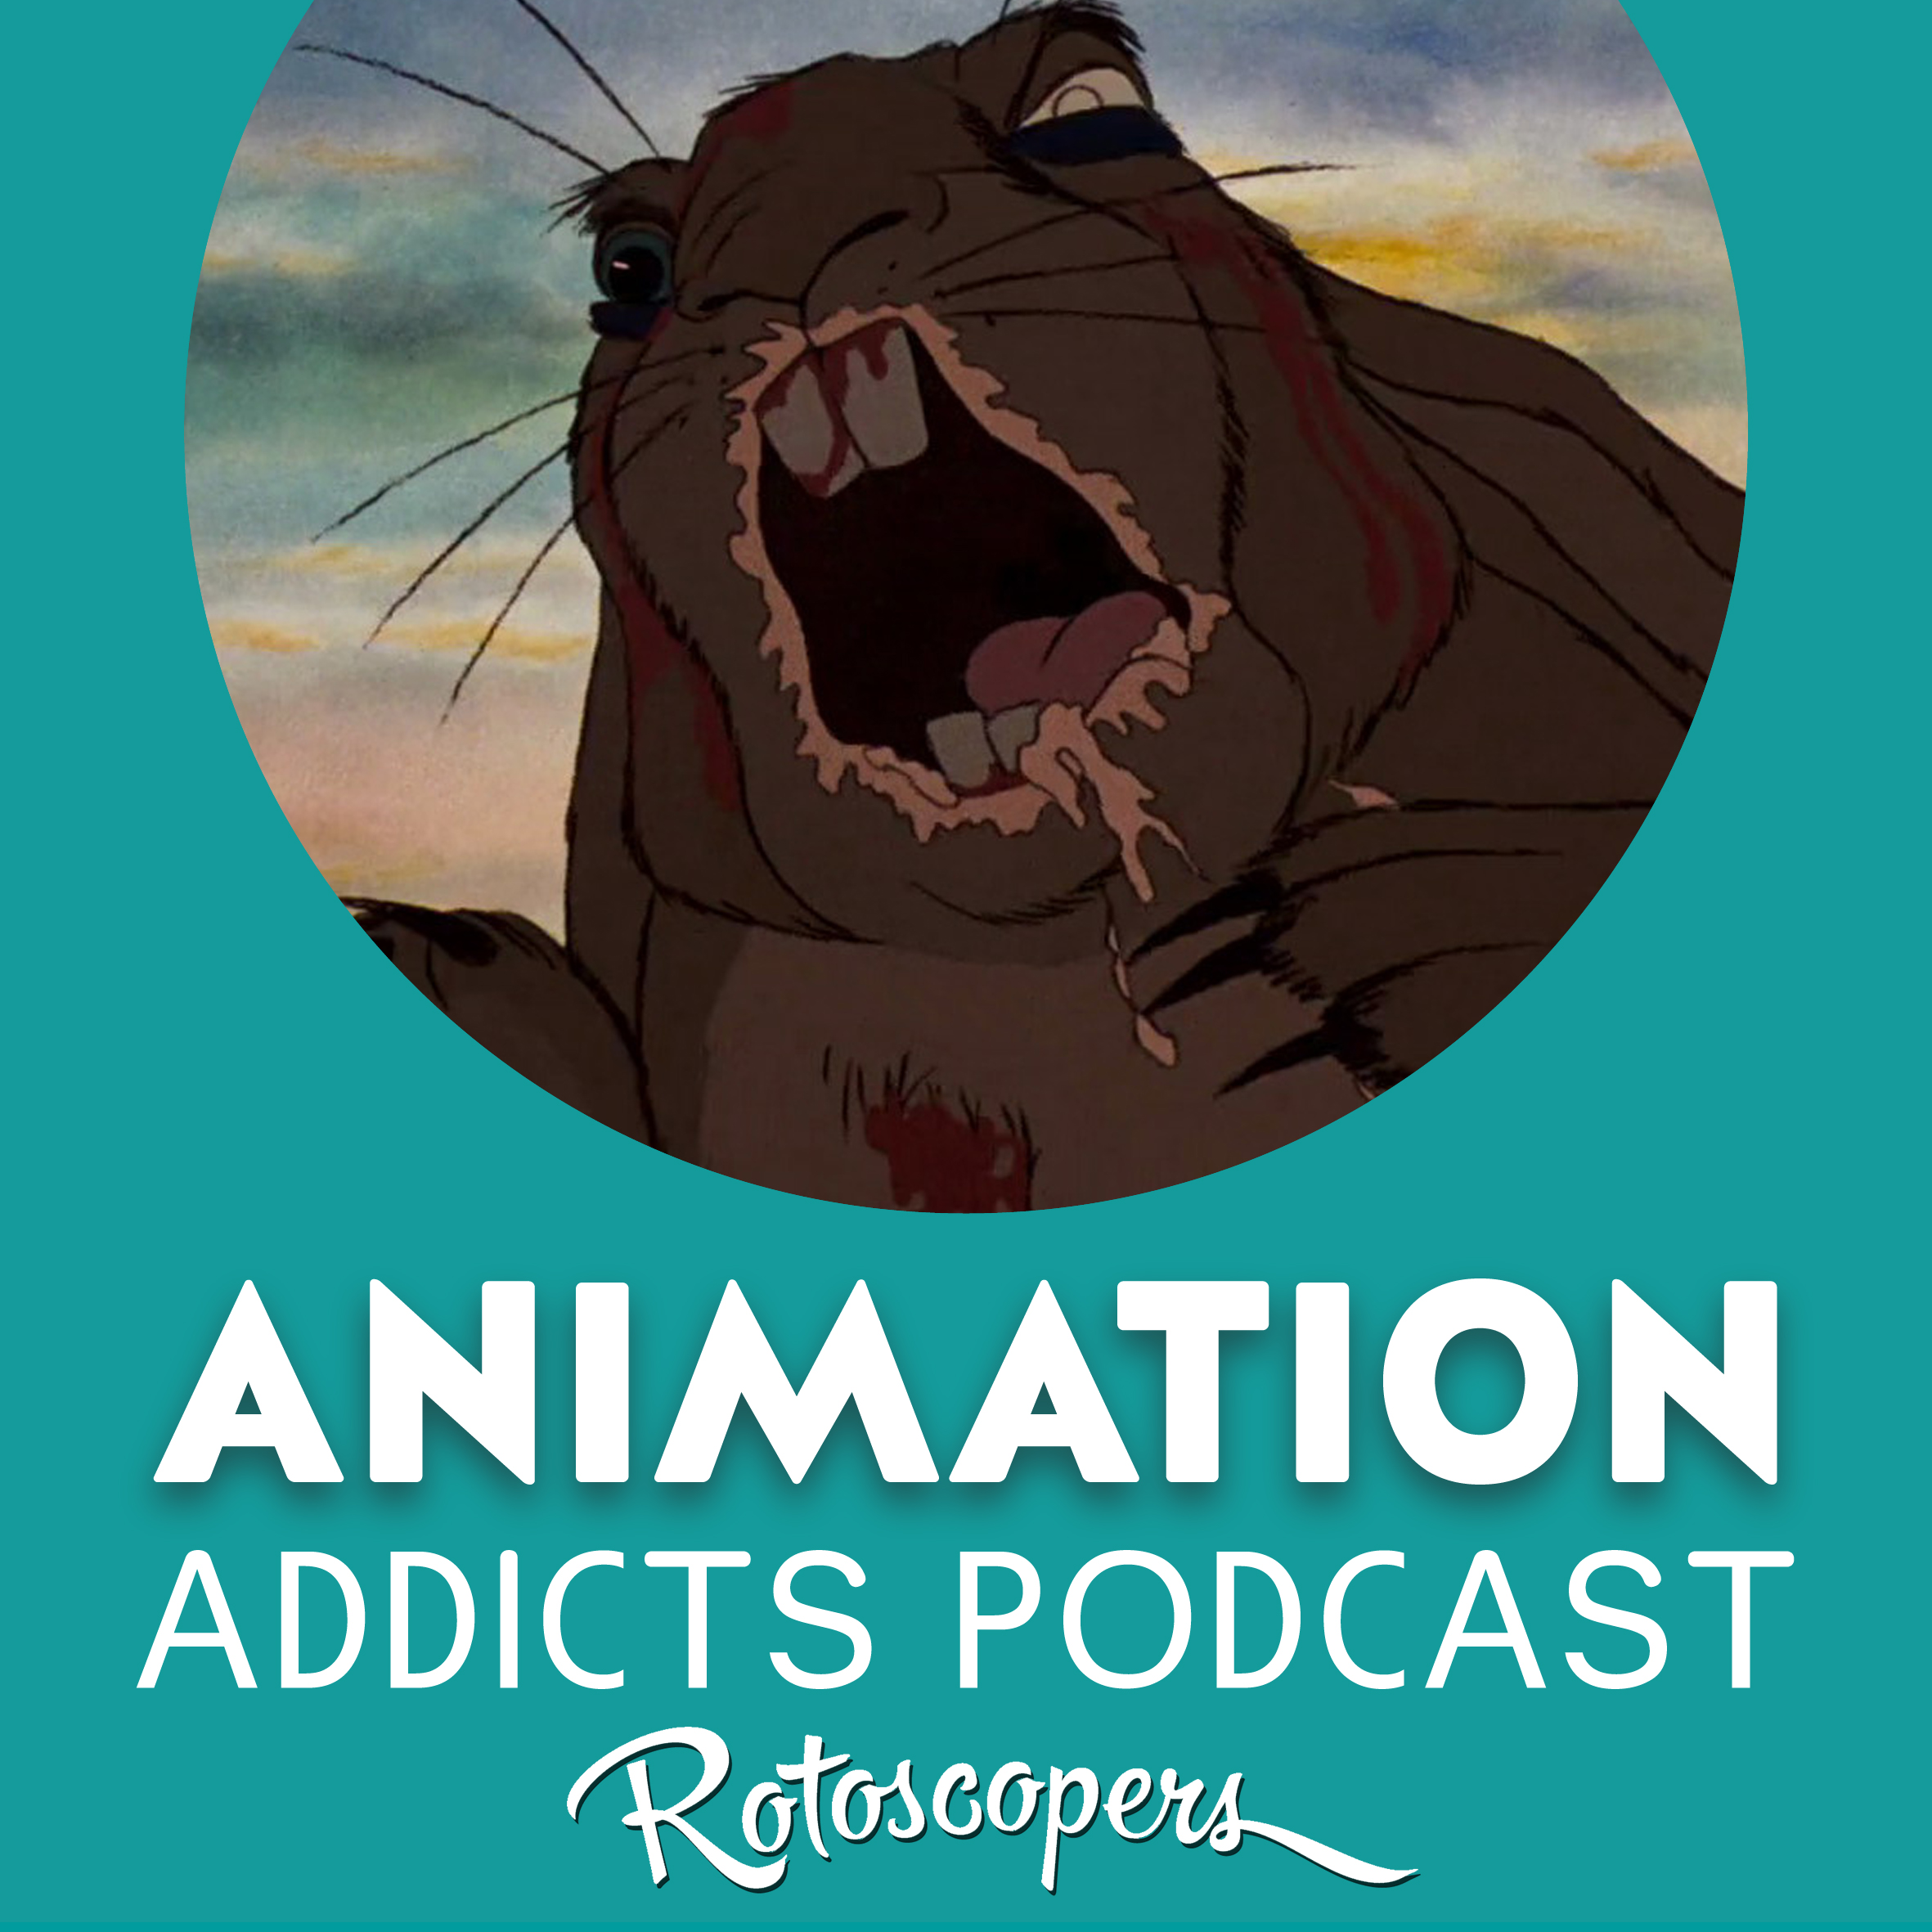 092 Watership Down - Complete with Criterion Snobbery